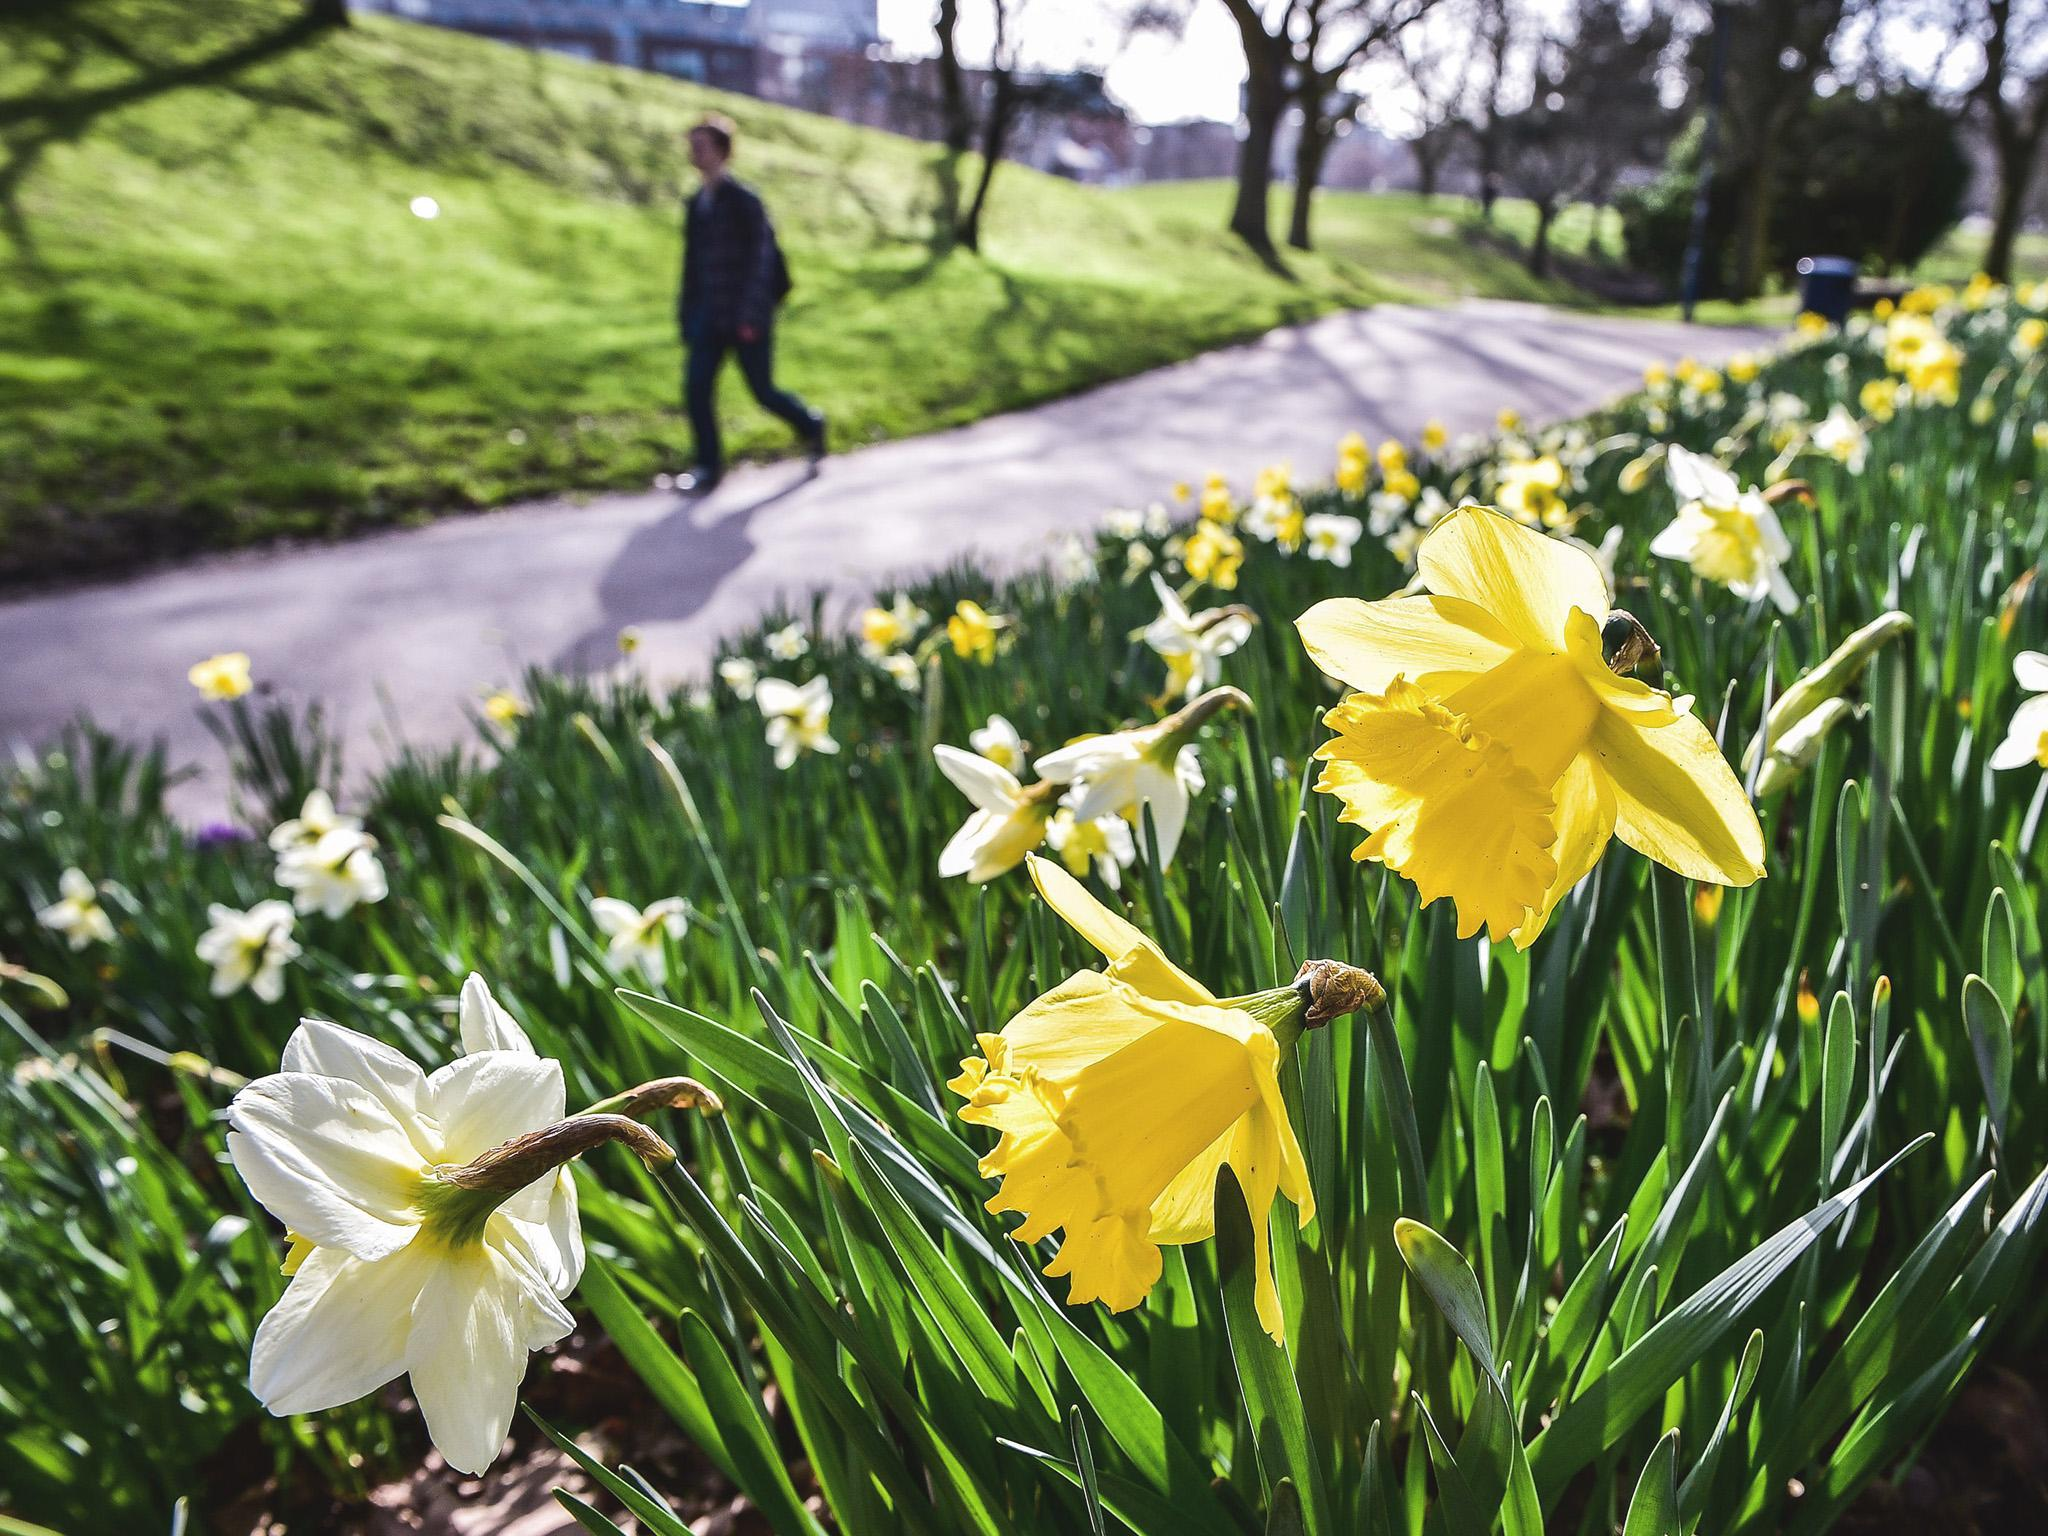 spring equinox vernal independent definition march date start starts meaning science why